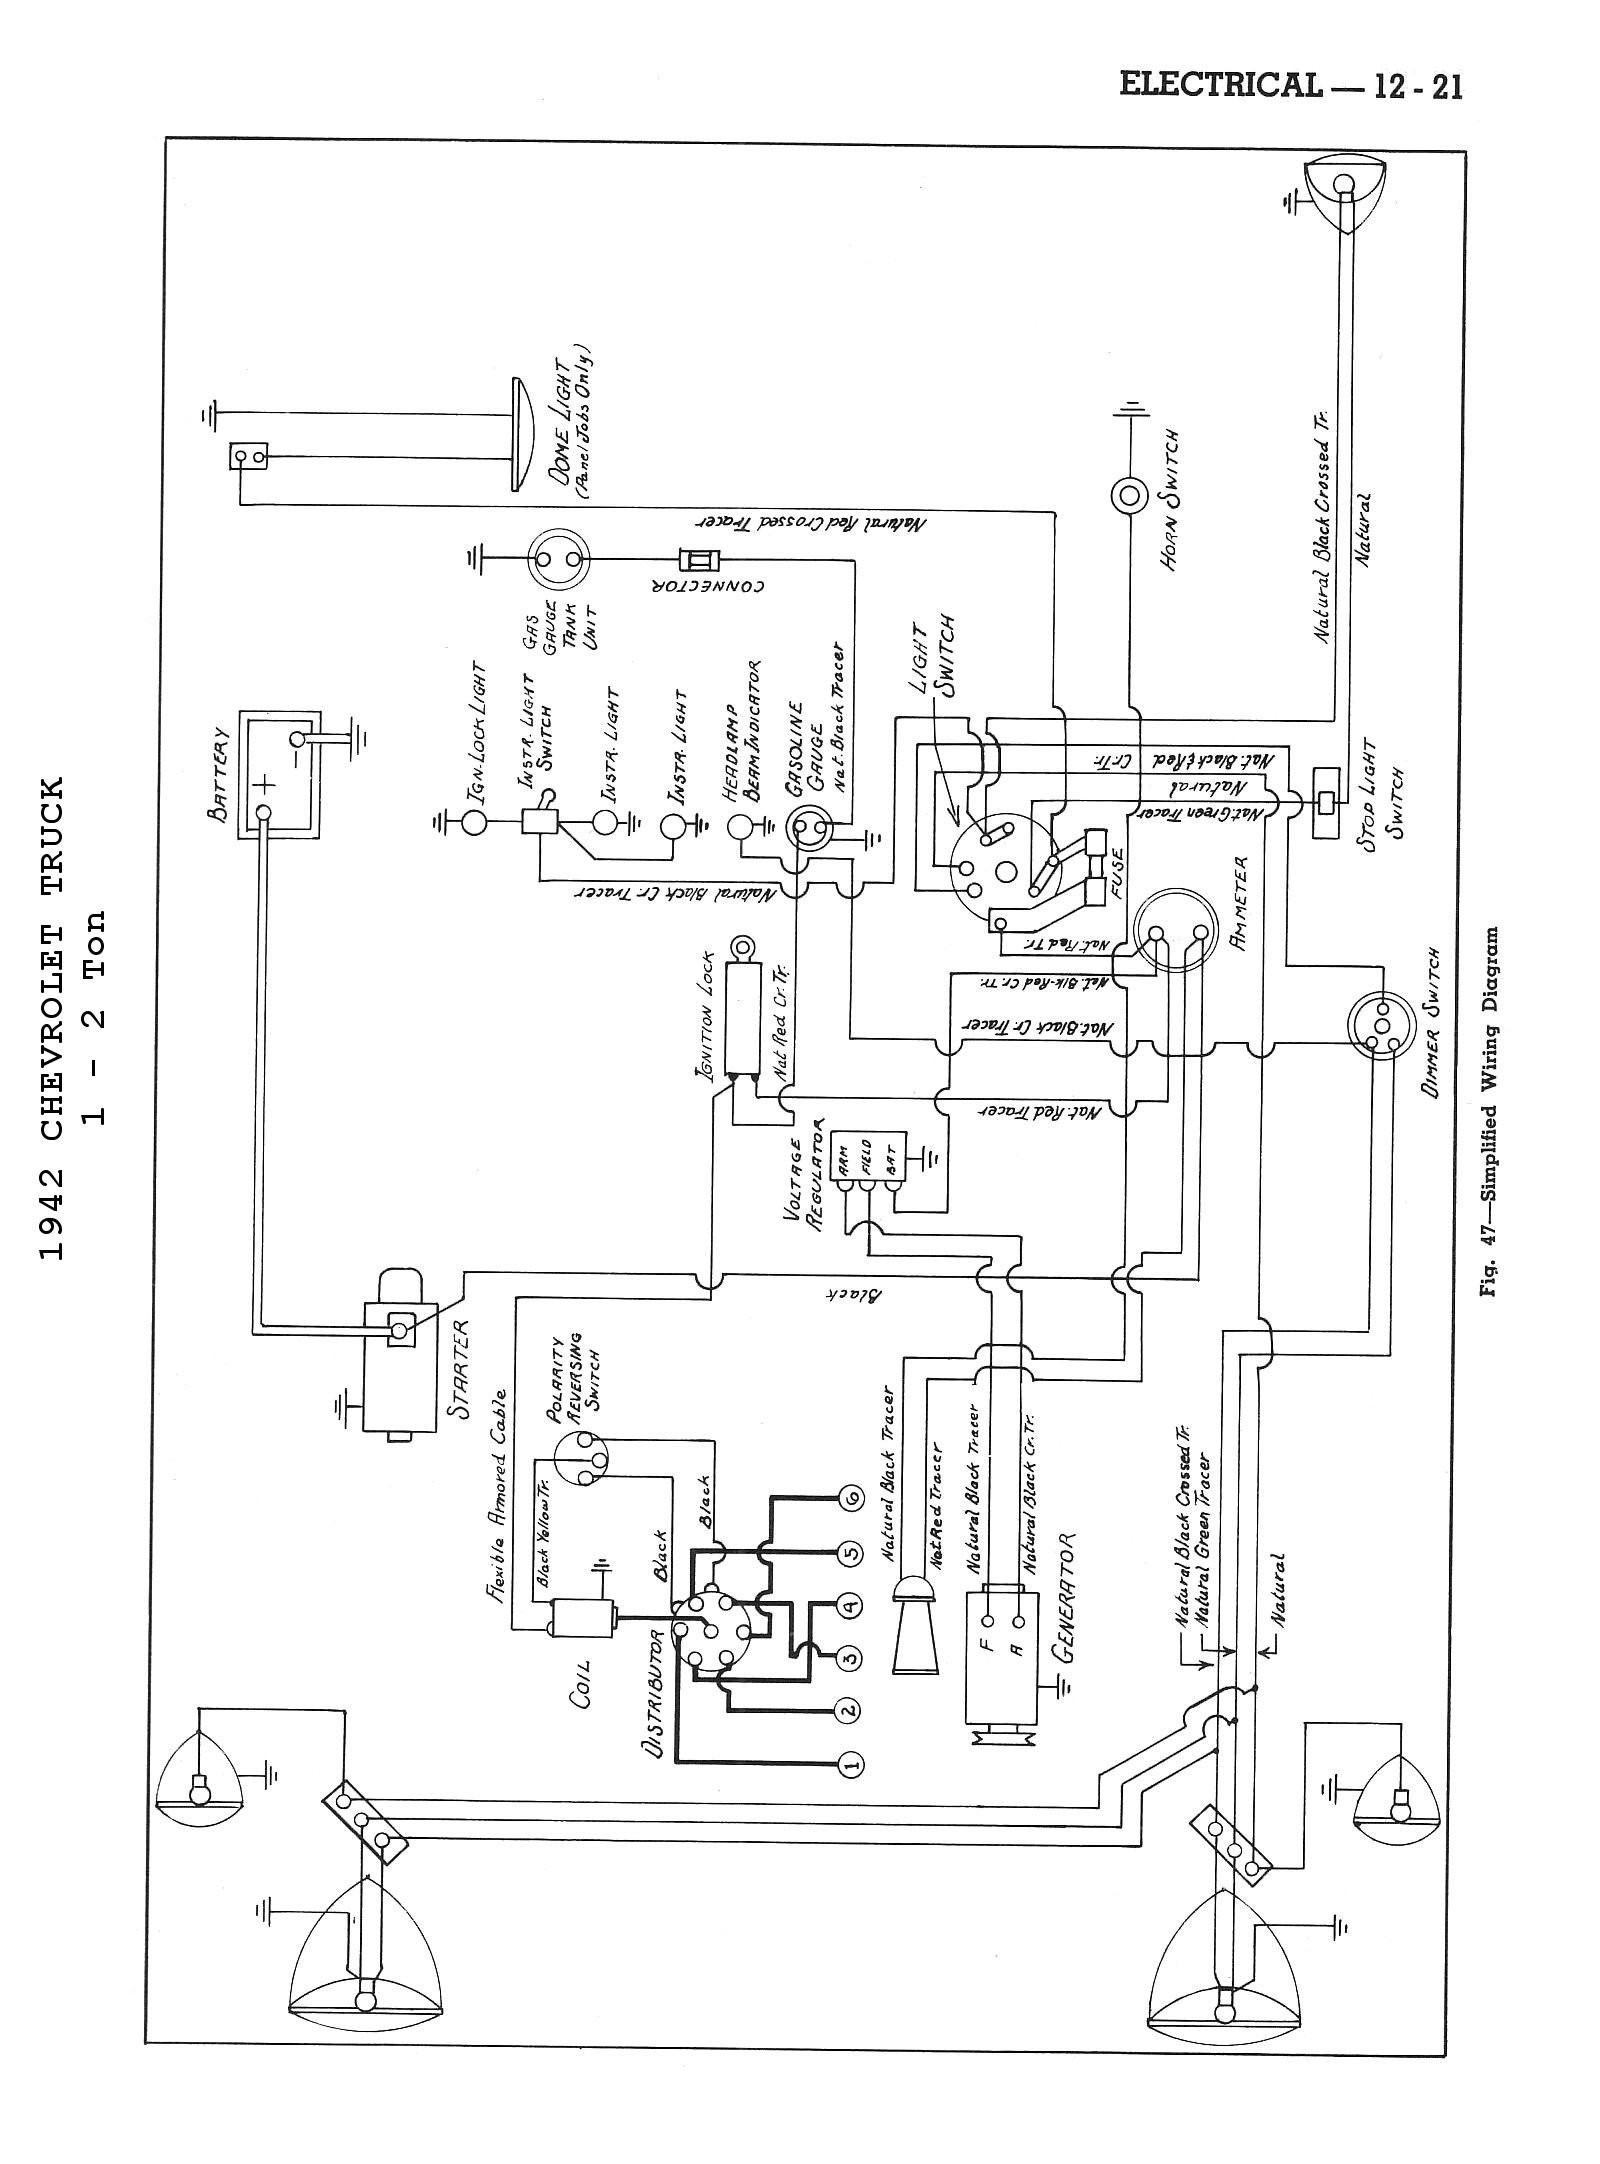 hight resolution of 1957 chevy heater wiring diagram books of wiring diagram u2022 57 chevy dash wiring diagram